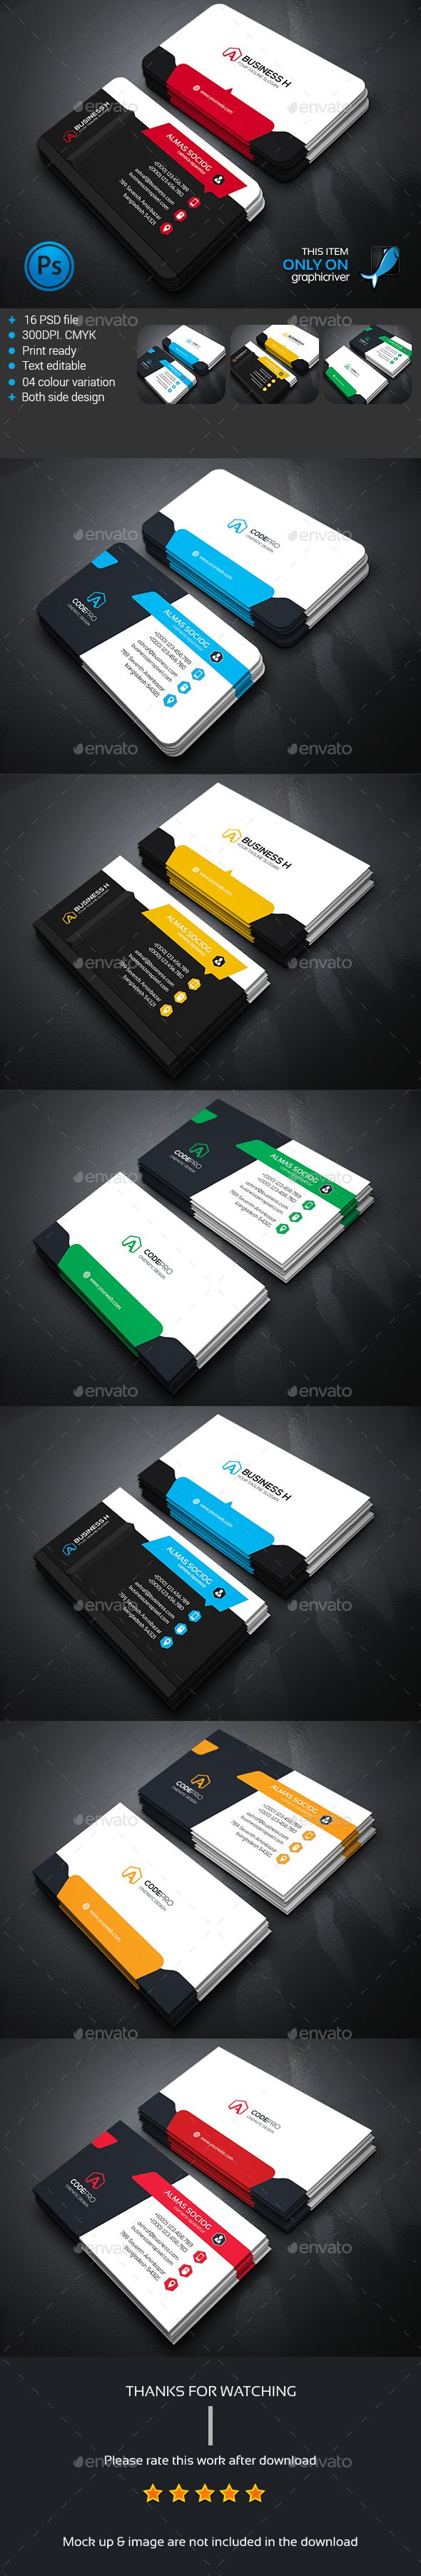 15 best images about business card on pinterest